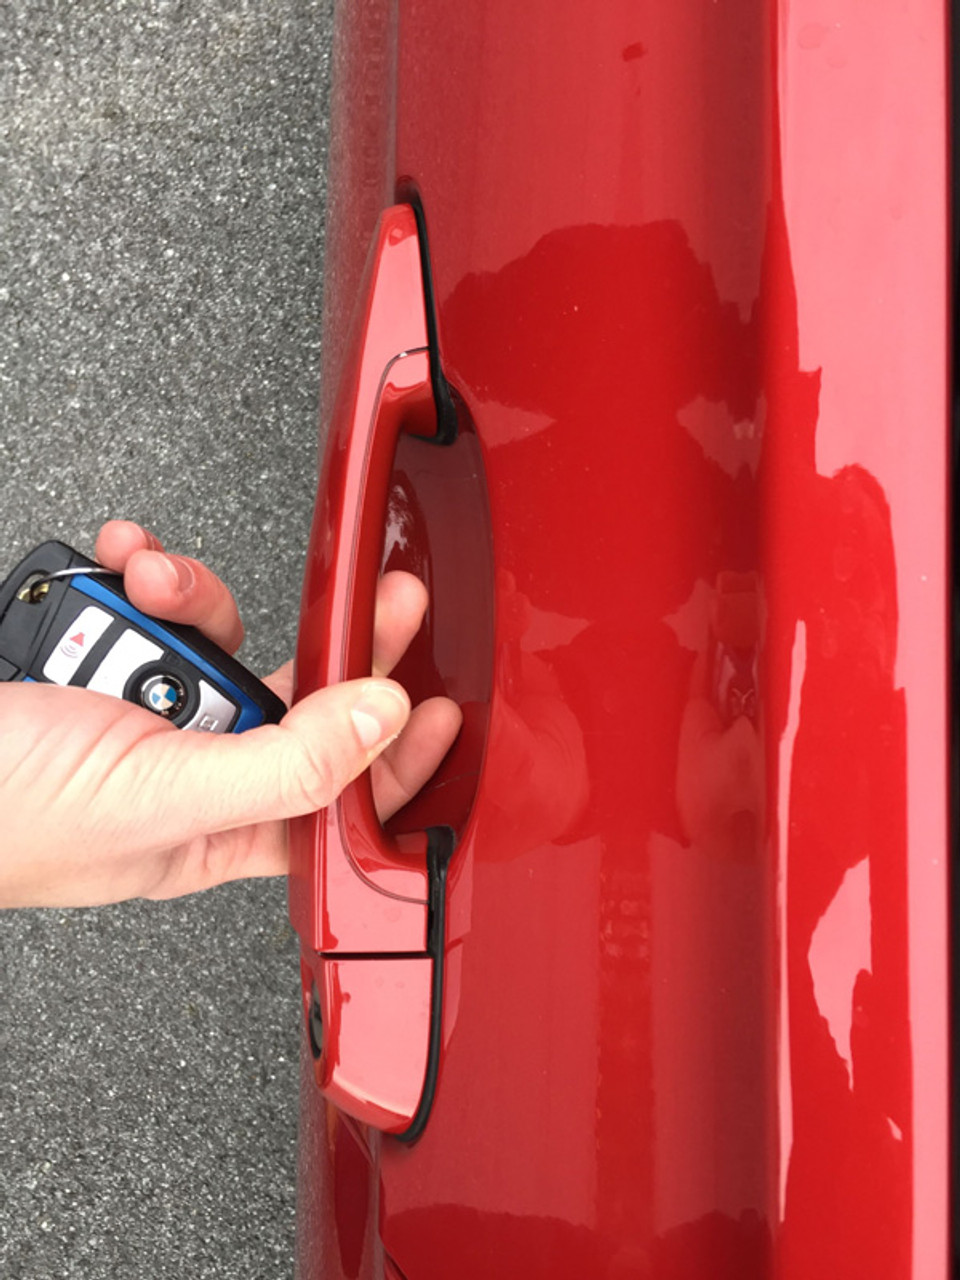 Lamin-x H1564 Door Handle Cup Paint Protection